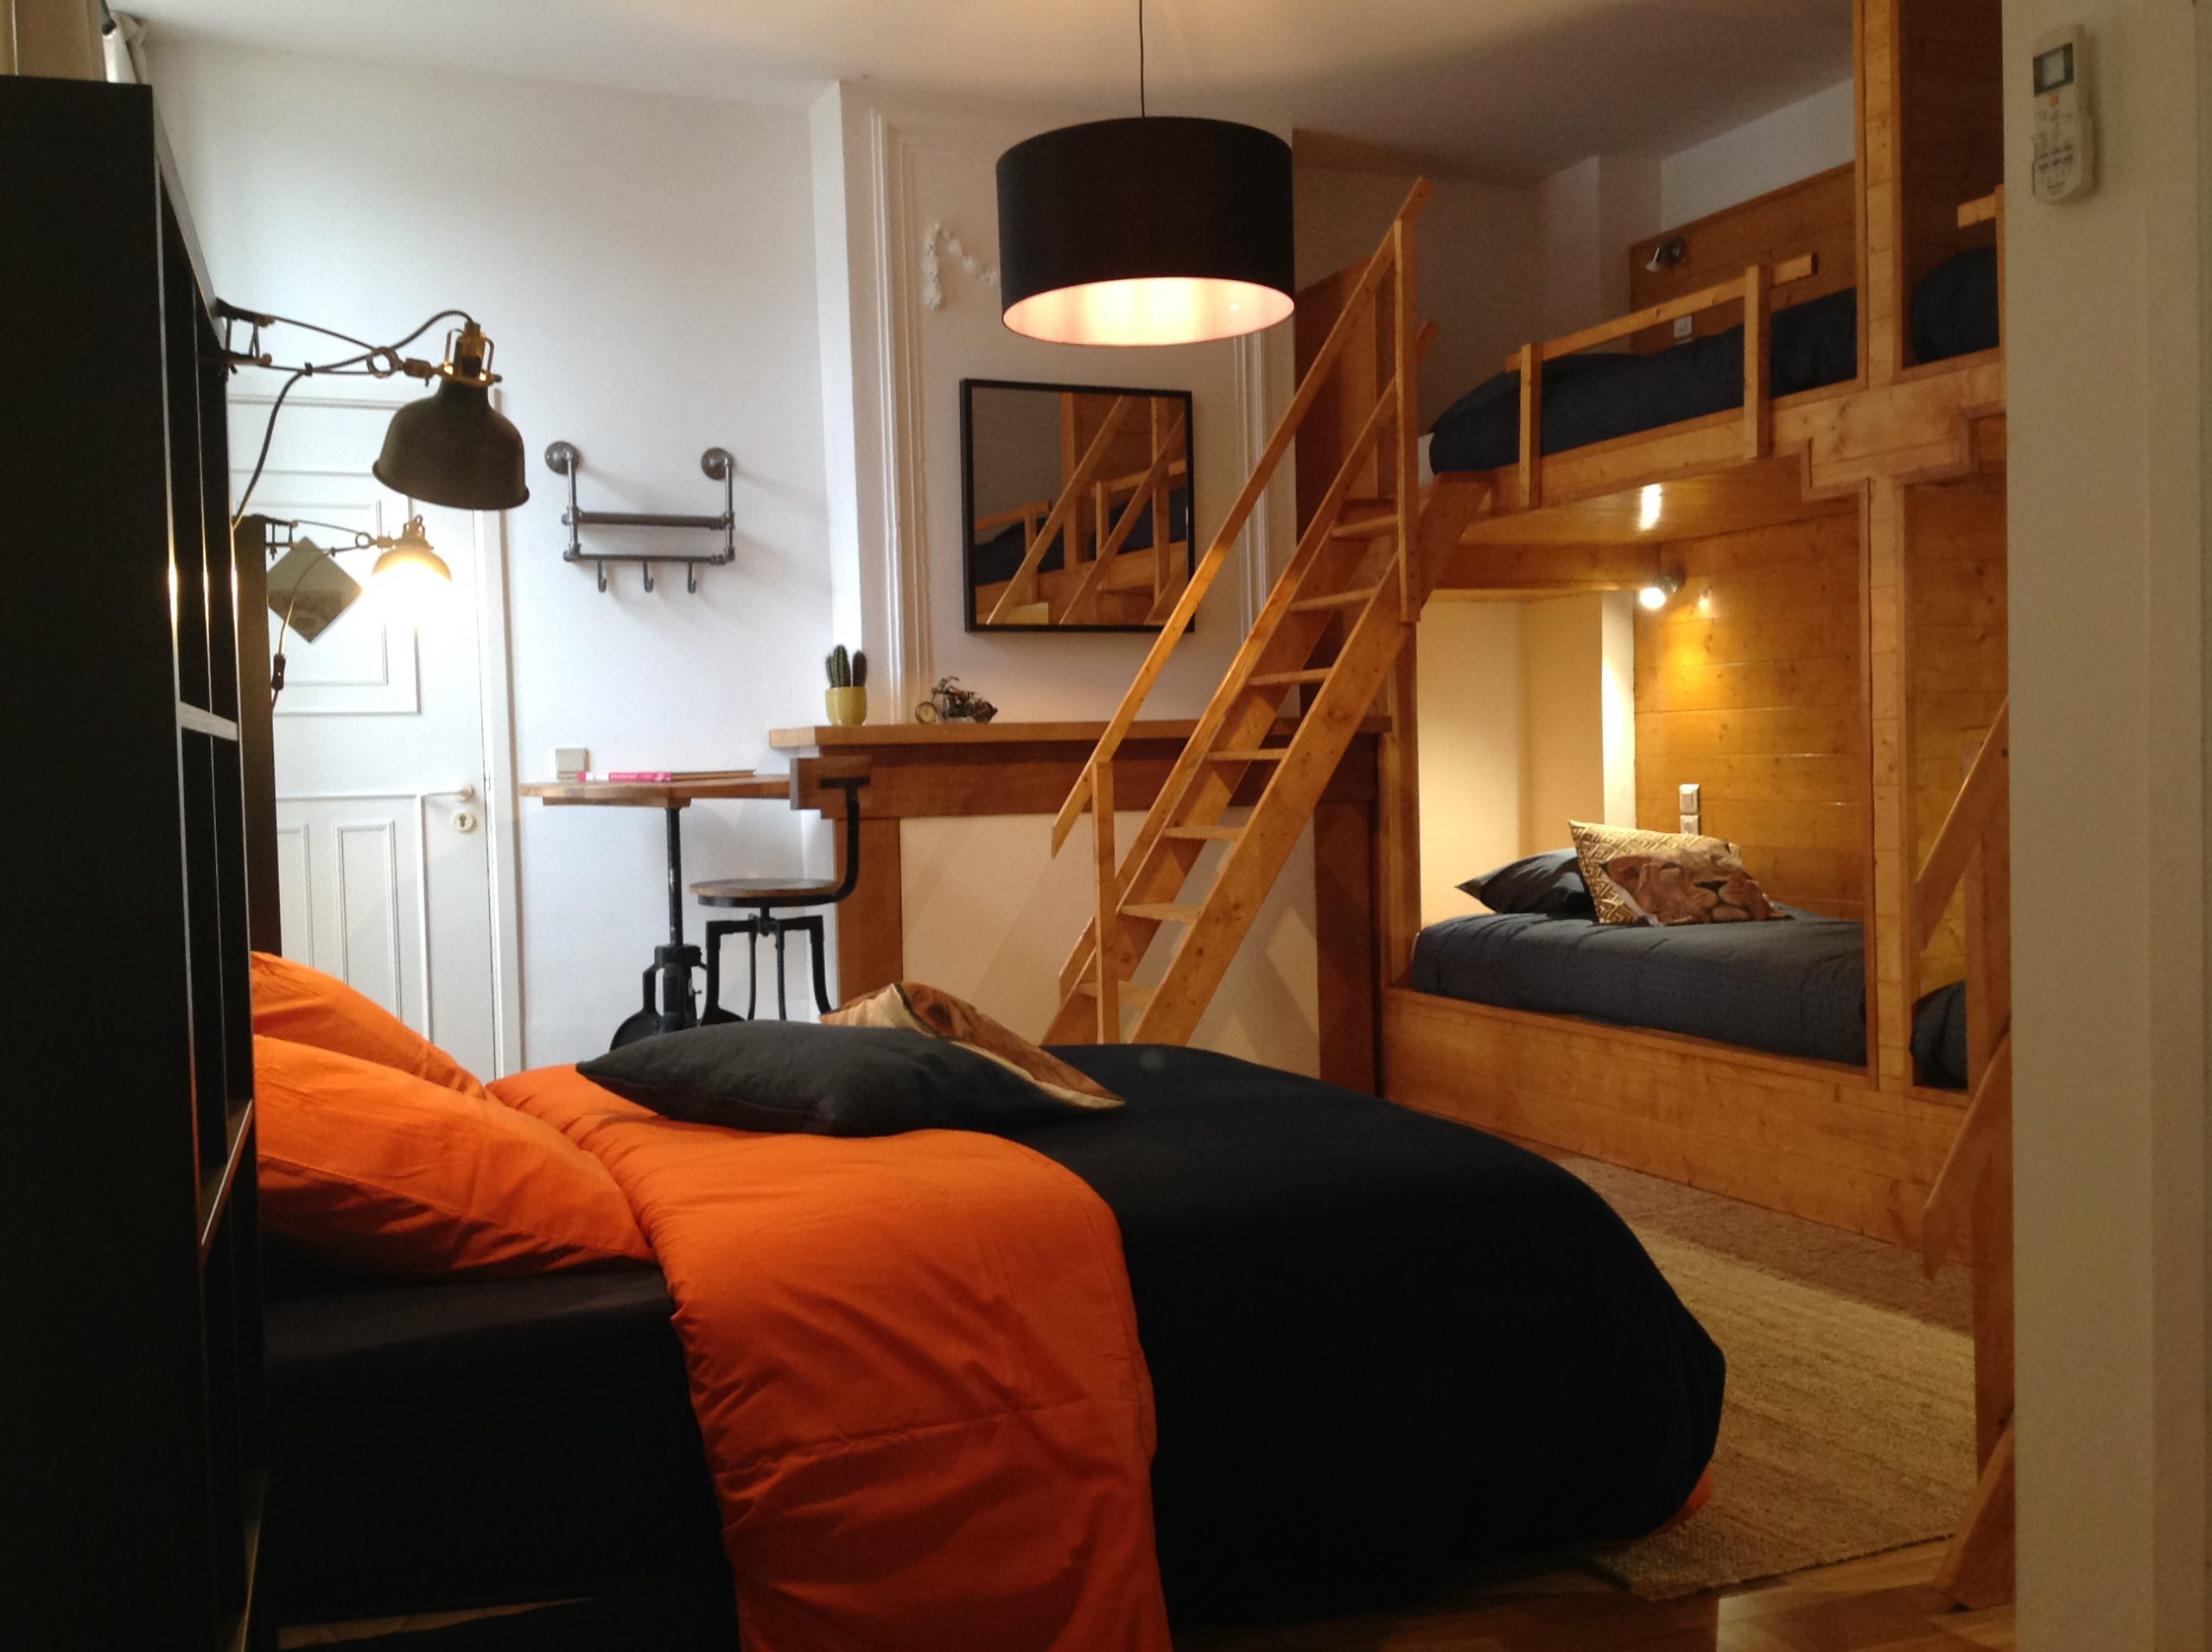 Backpackers room beds